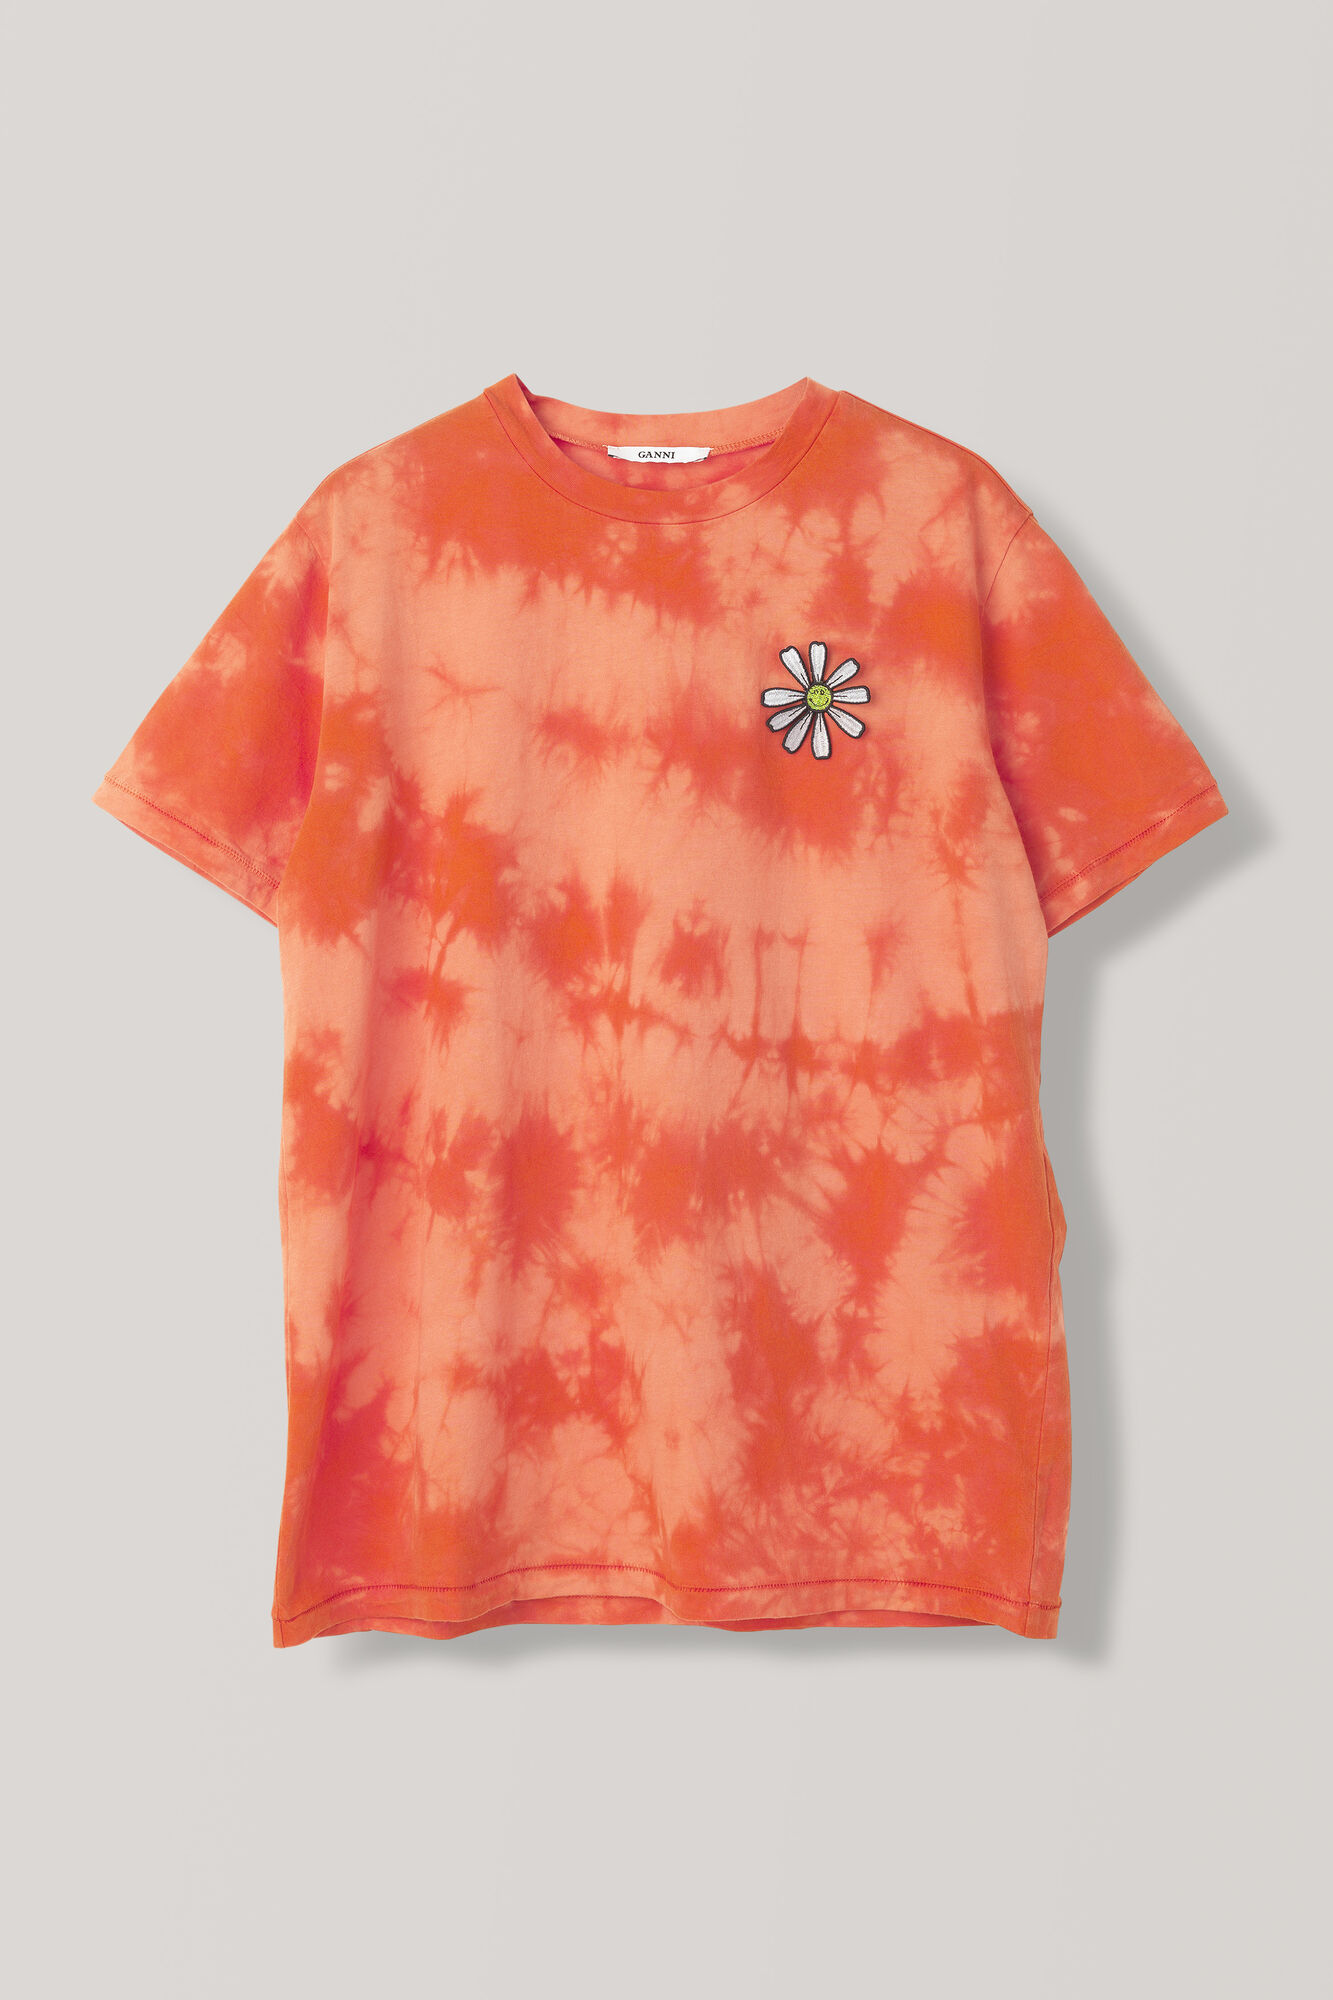 Verbena T-shirt, Daisy, Big Apple Red, hi-res